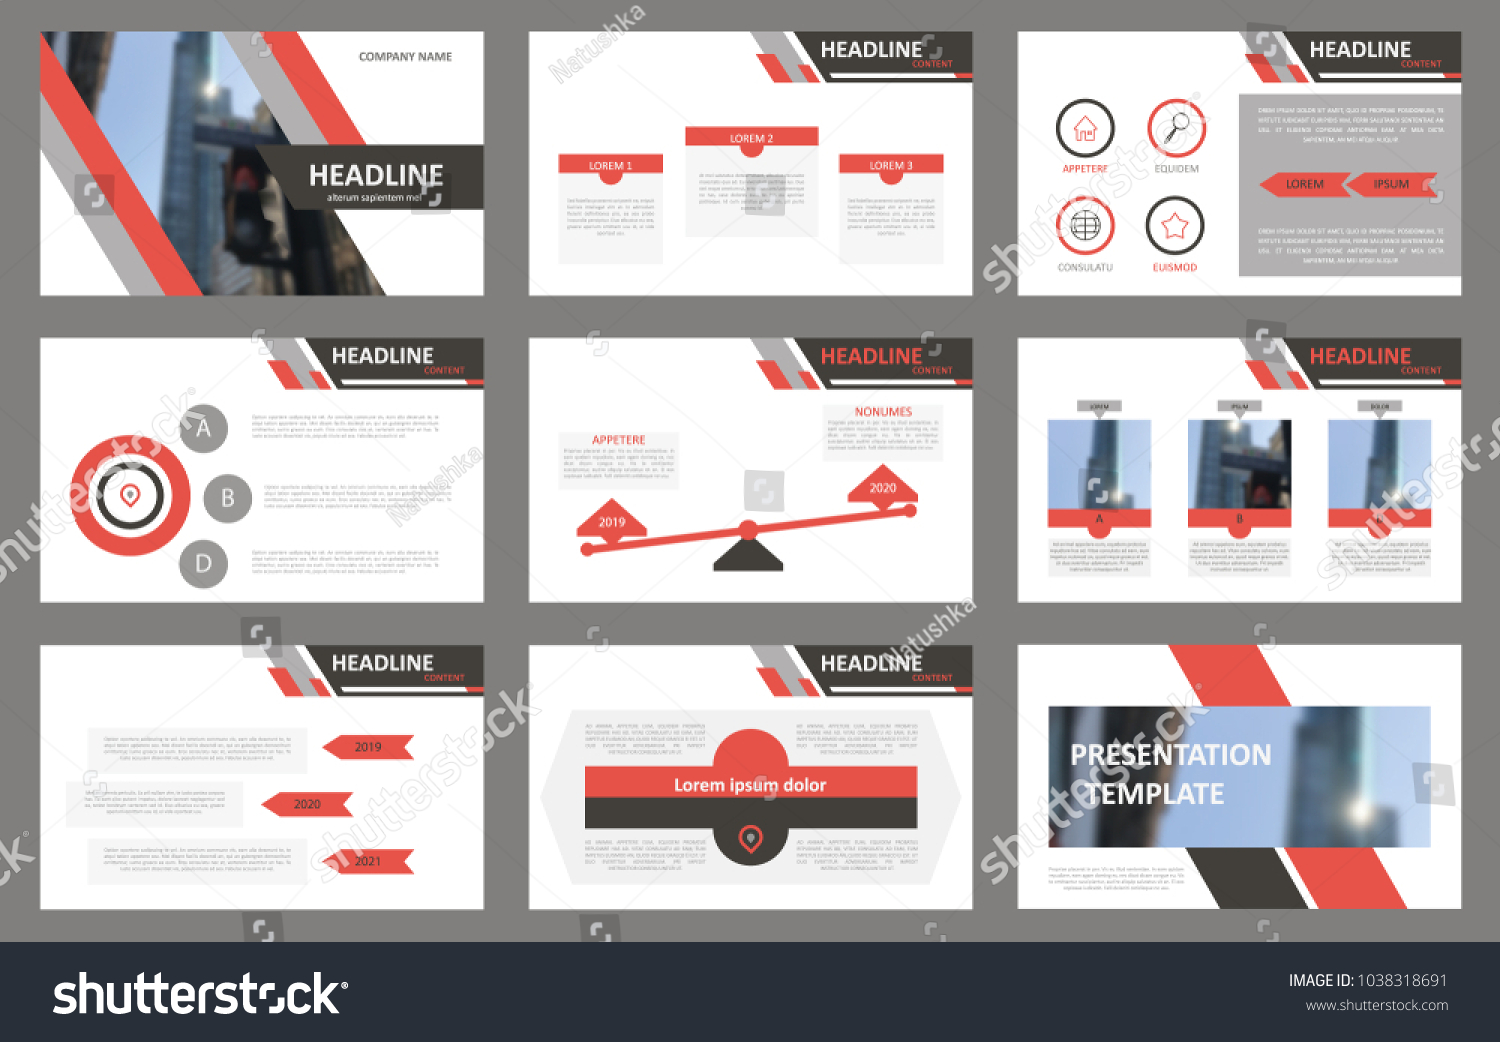 slides modern presentation template abstract infographic のベクター